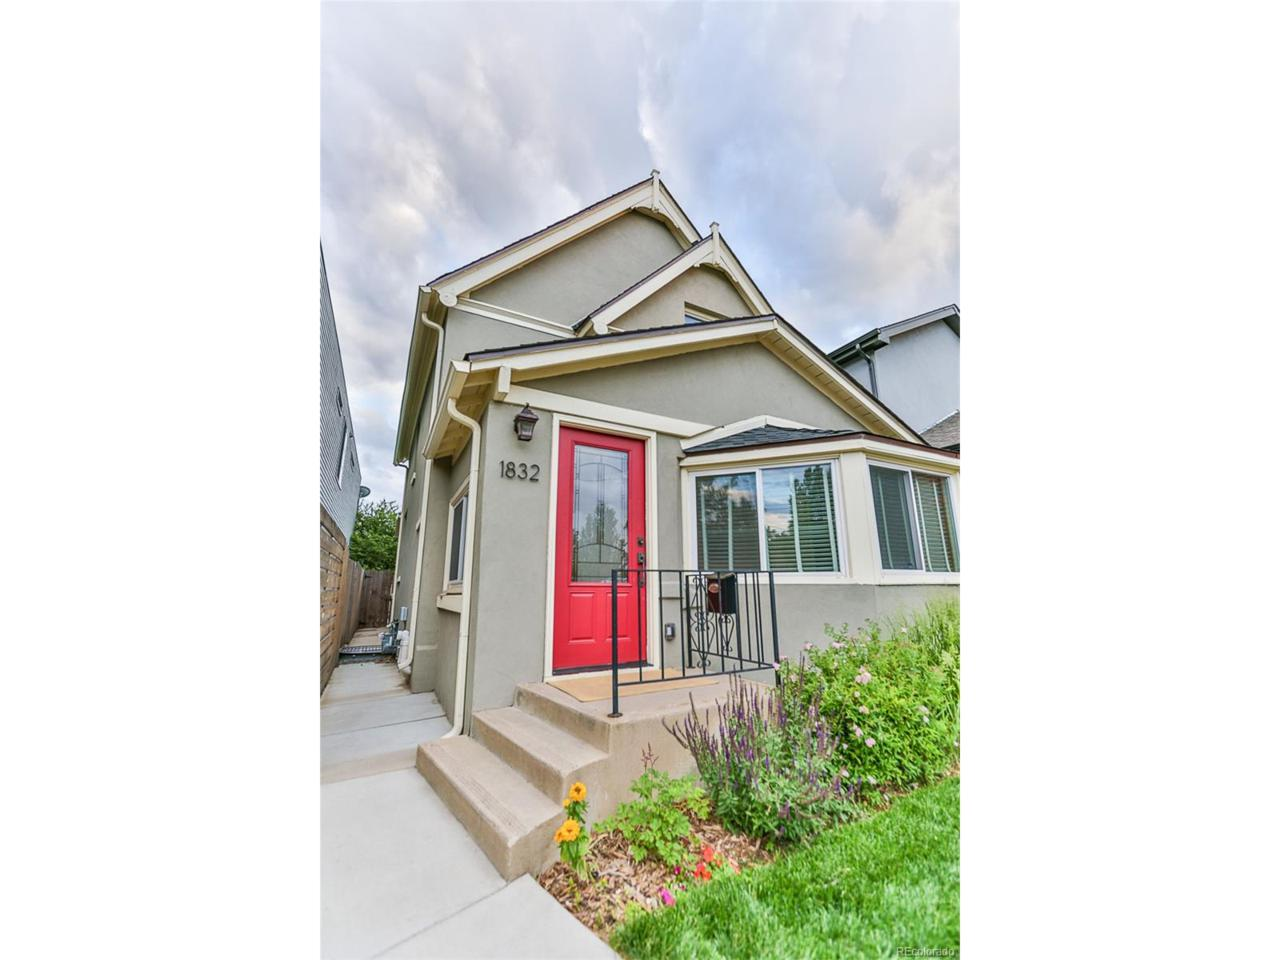 1832 W 36th Avenue, Denver, CO 80211 (MLS #6341768) :: 8z Real Estate